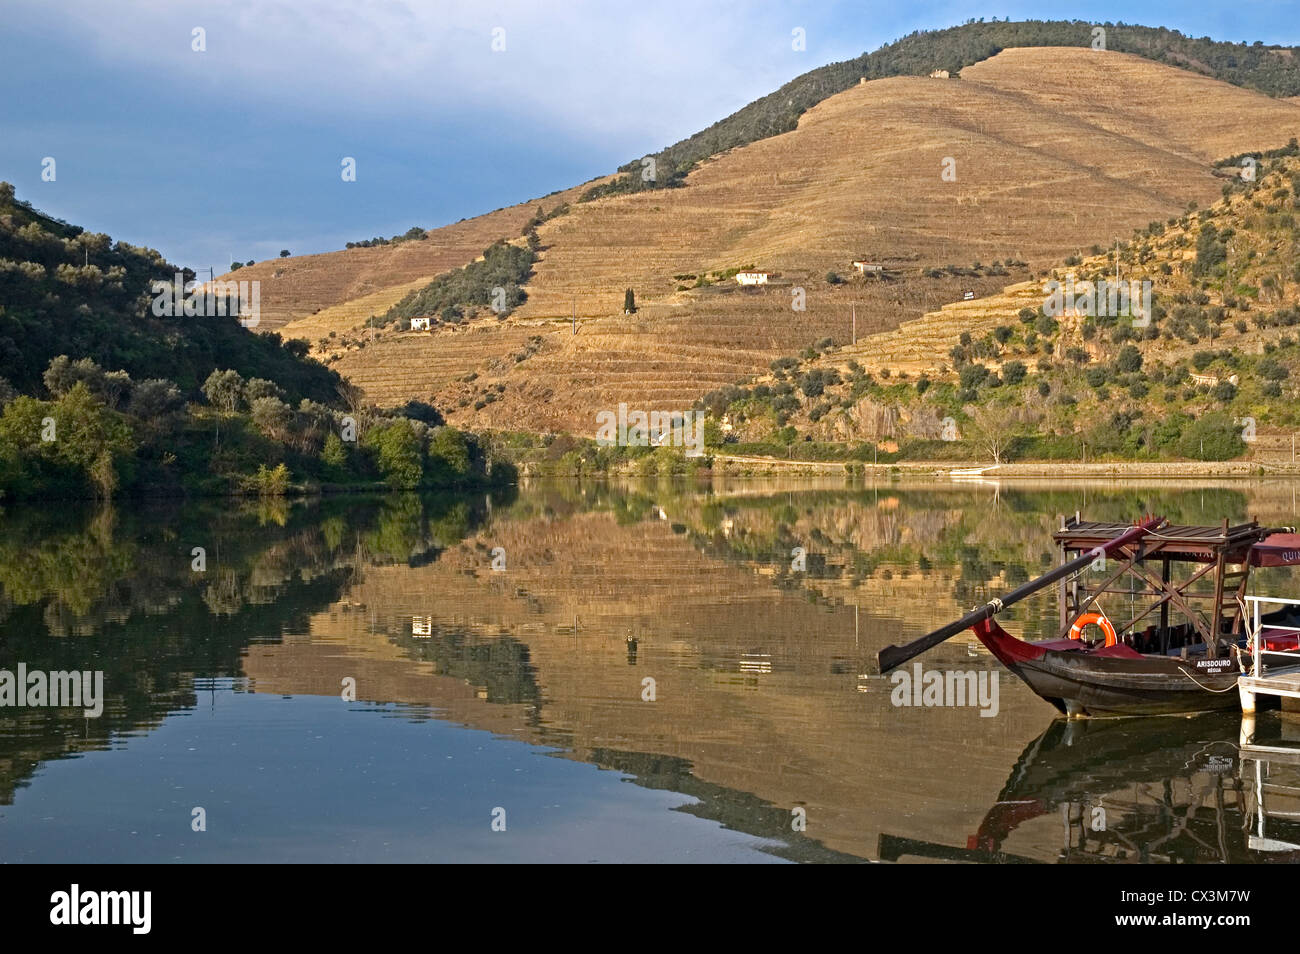 PORTUGAL, River Douro, Pinhao, view on river bank with barca rabelo - Stock Image